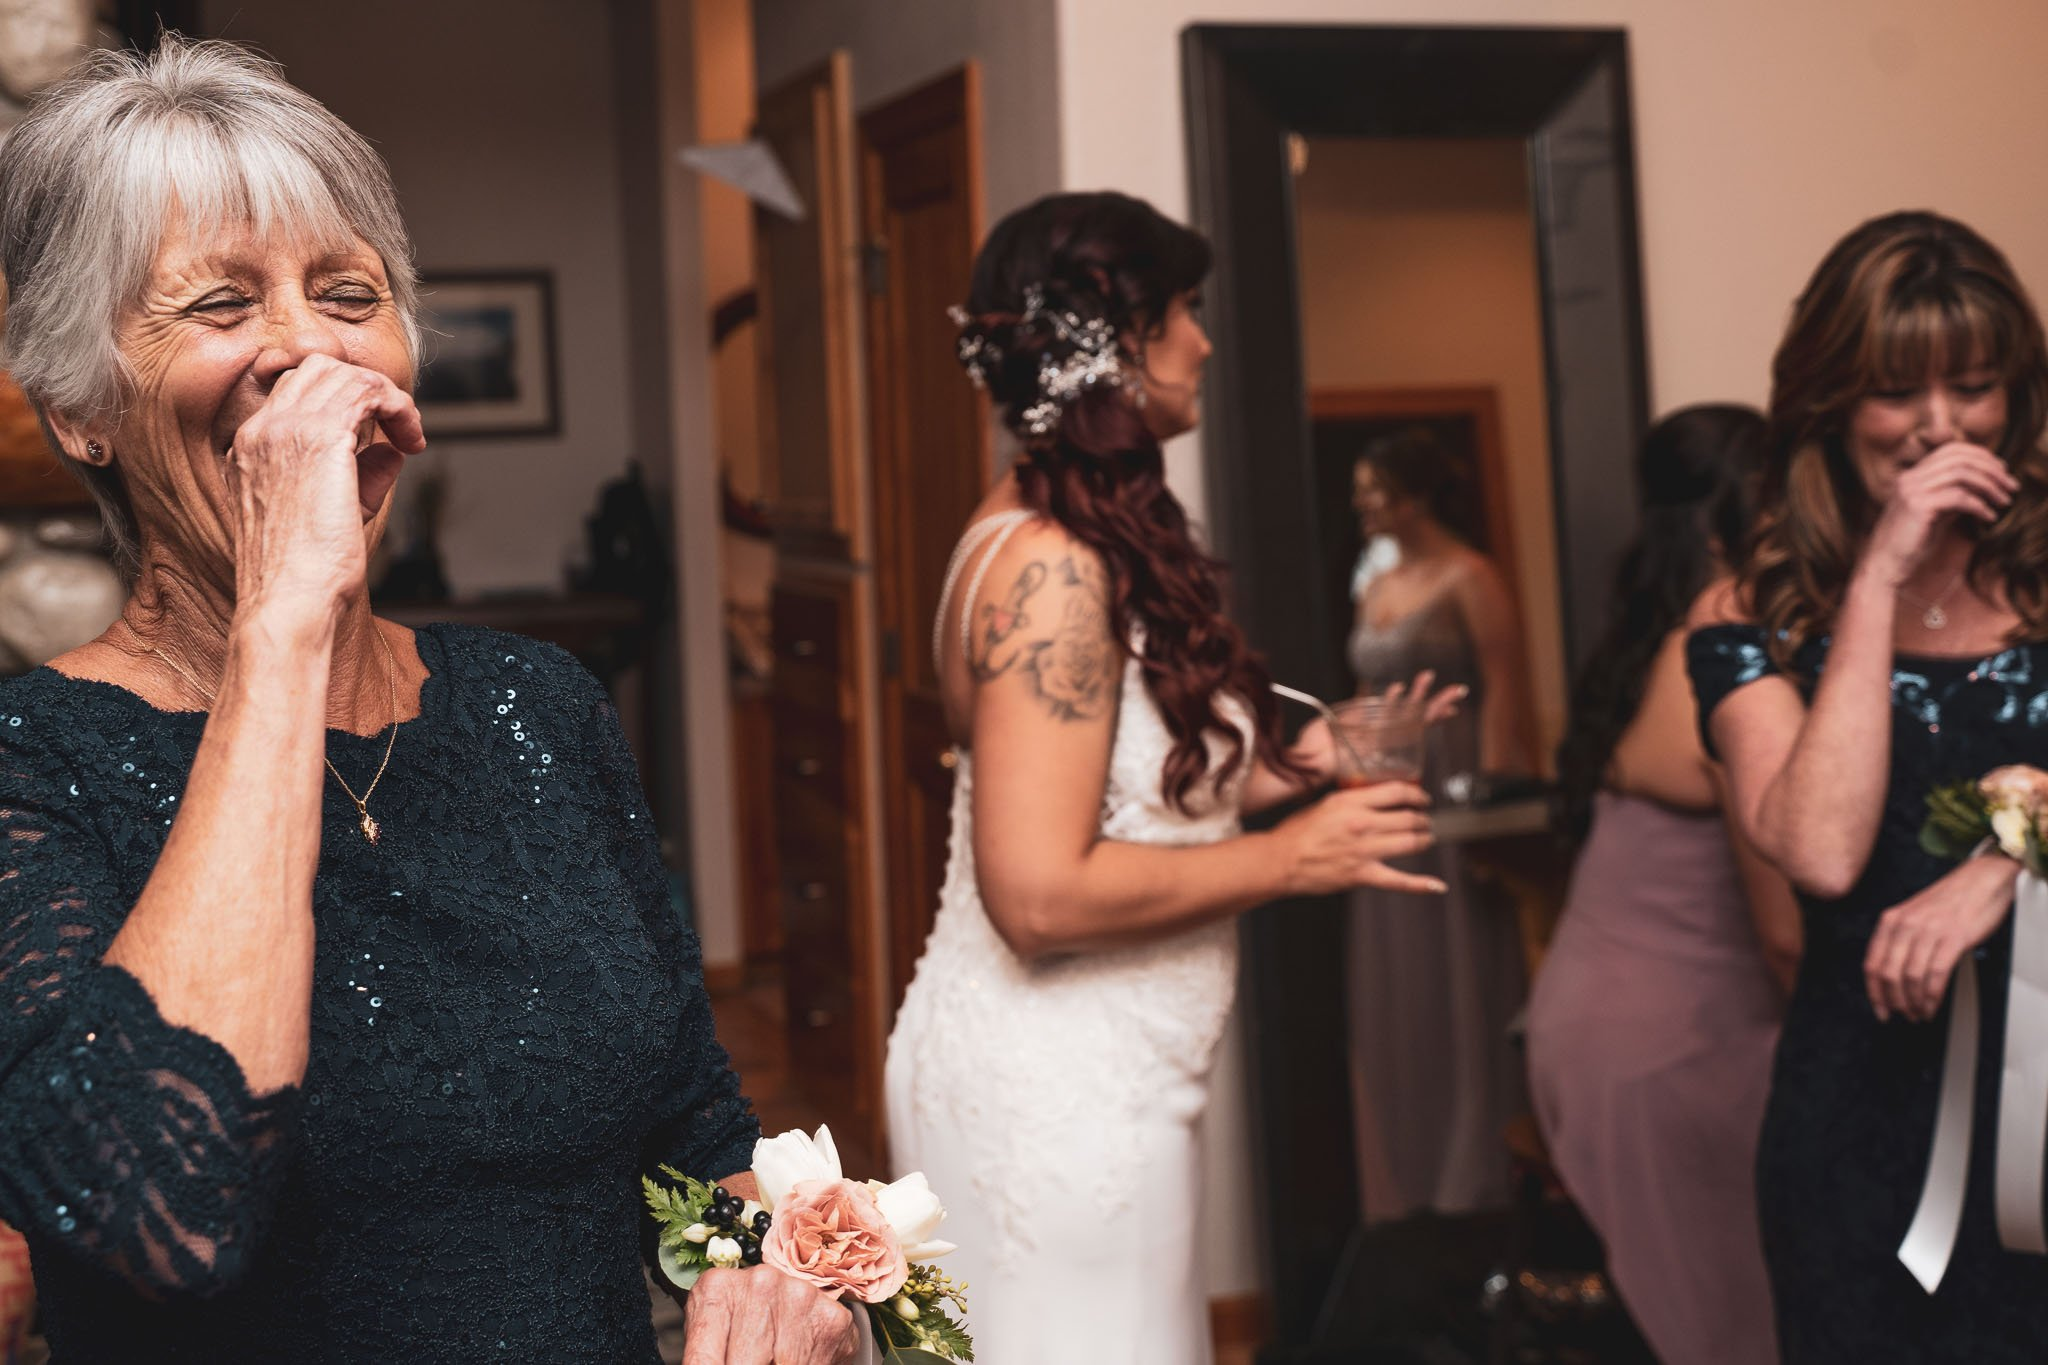 Bride's grandmother and mother both laugh in the same way